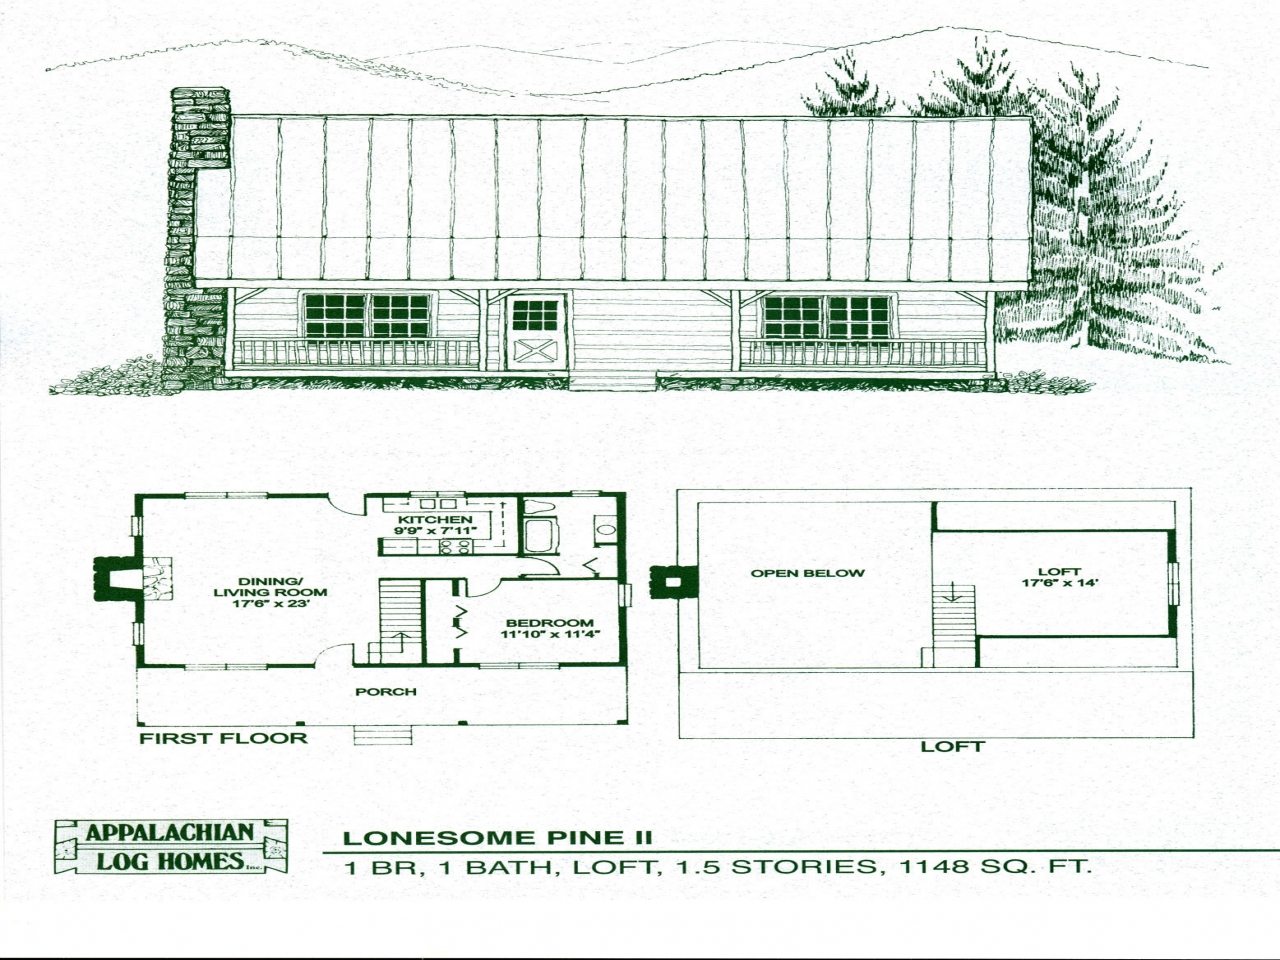 One room log cabin floor plans one room log cabin for One room log cabin designs